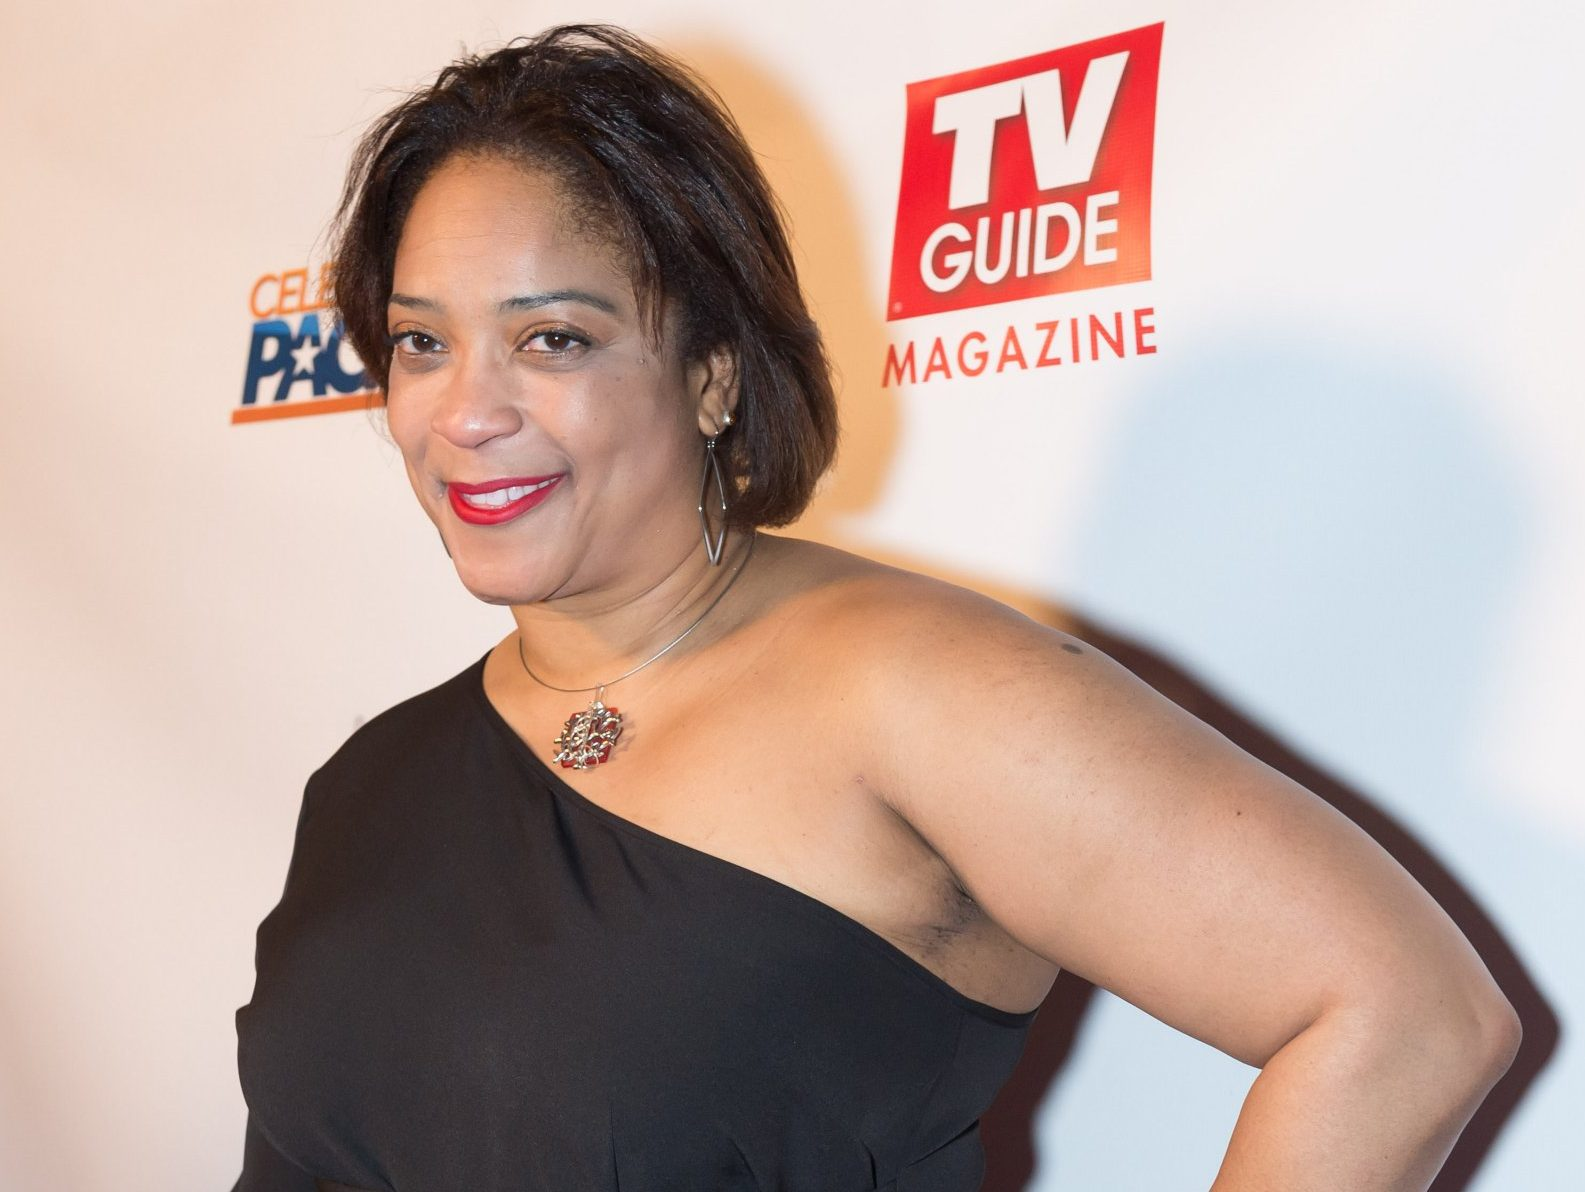 Mandatory Credit: Photo by MediaPunch/REX/Shutterstock (8597781l) DuShon Brown TV Guide Magazine celebrates its cover stars, Chicago, Illinois, USA - 10 Apr 2017